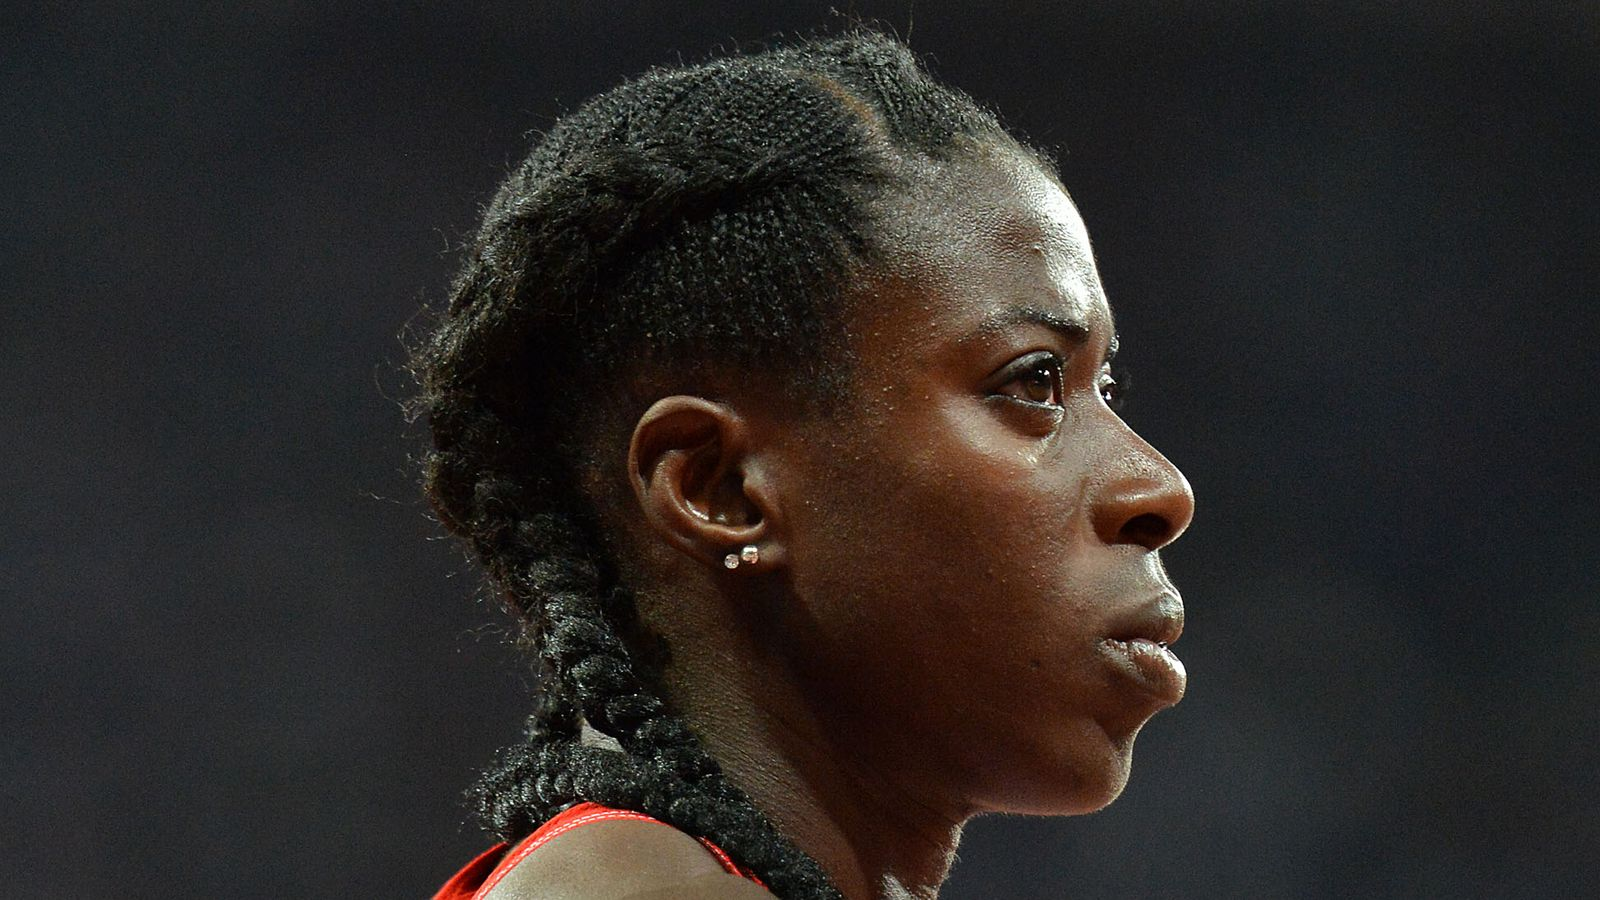 Christine Ohuruogu reveals her 'hard' choice between netball and athletics in Driving Force